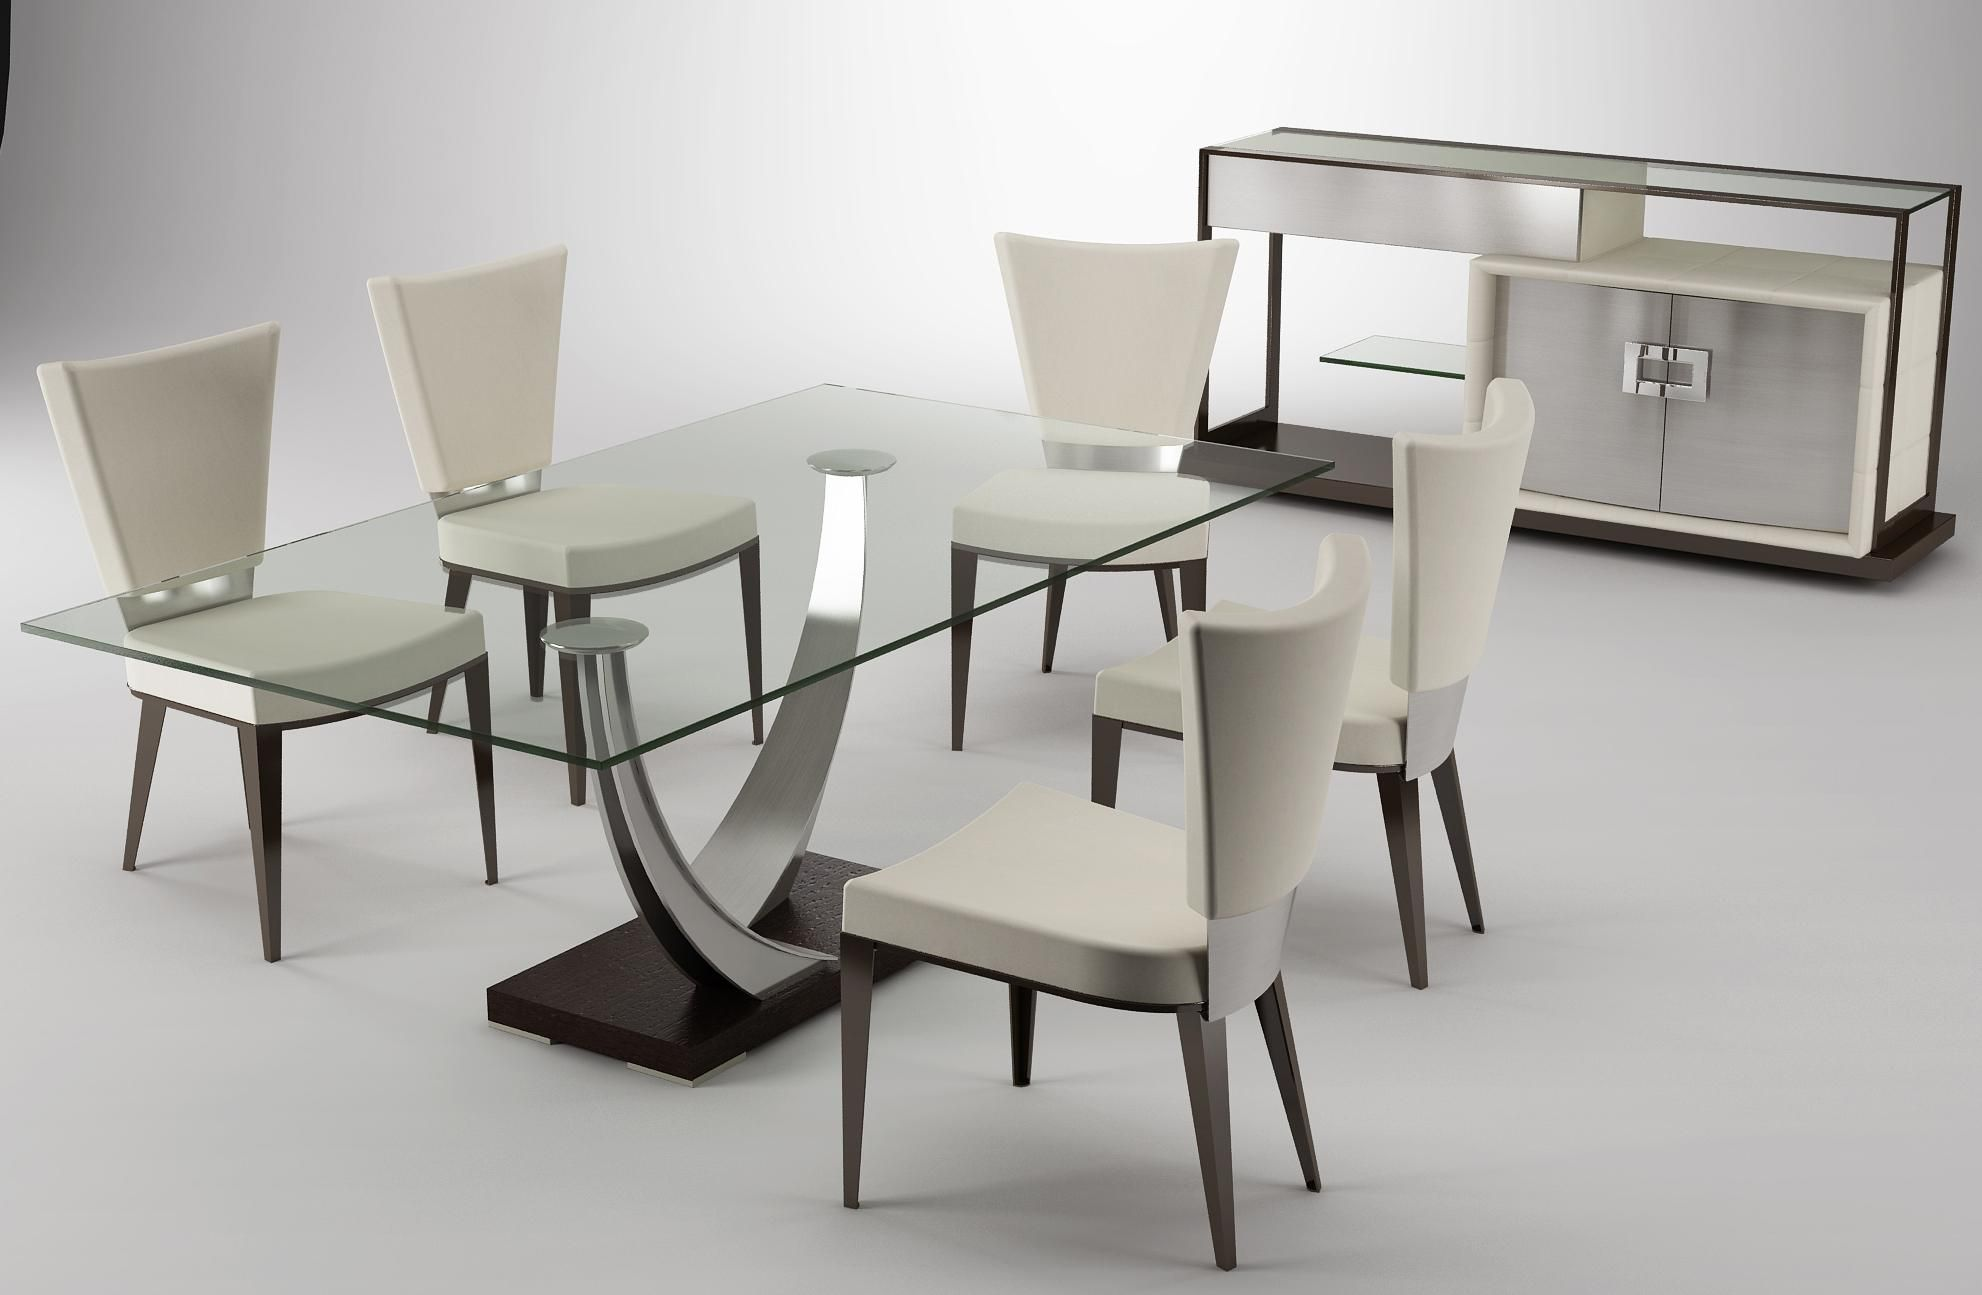 Amazing modern stylish dining room table set designs elite for Glass dining table designs